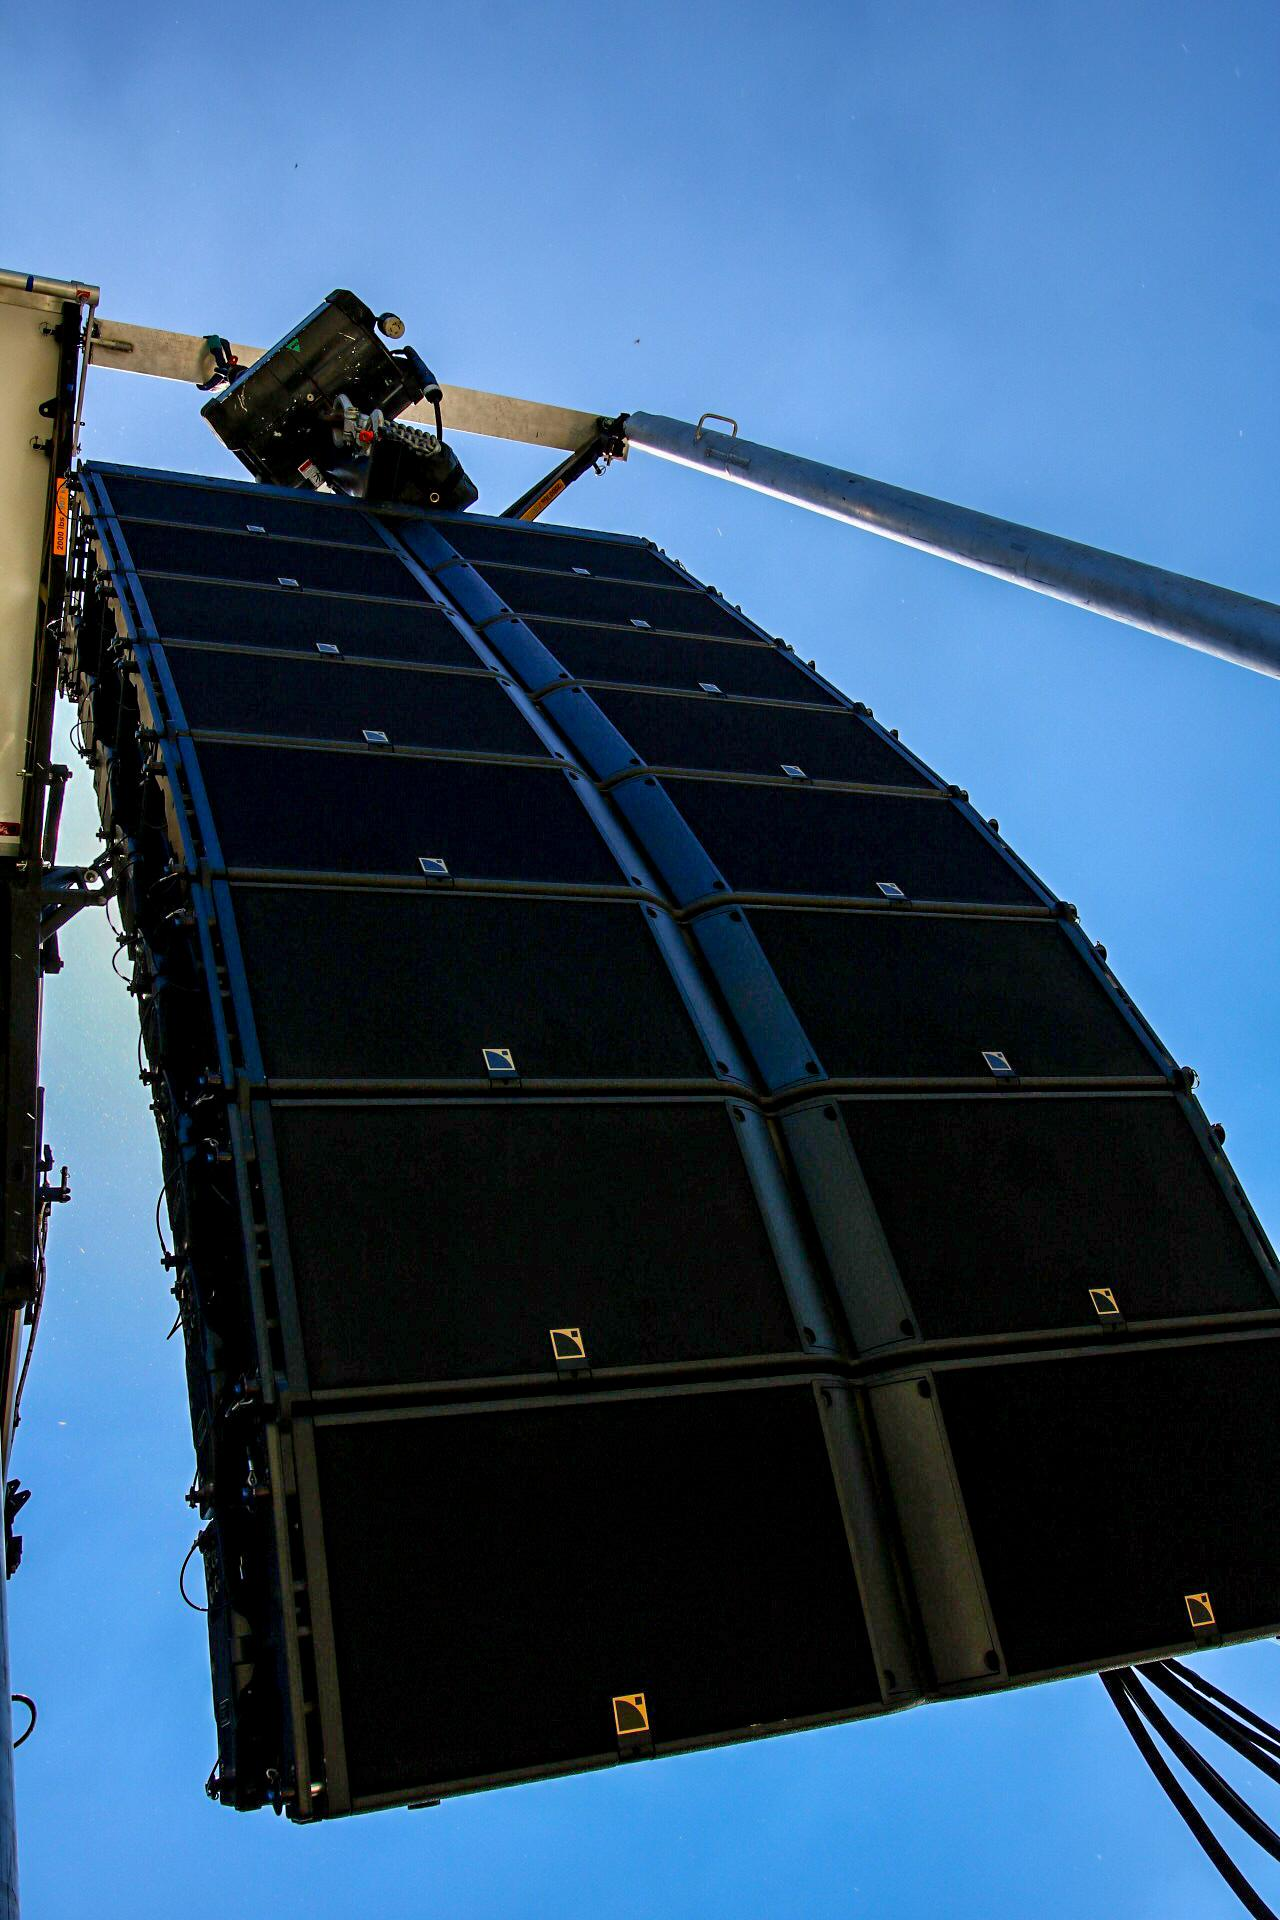 k2 L-ACOUSTICS Line-Array Audio